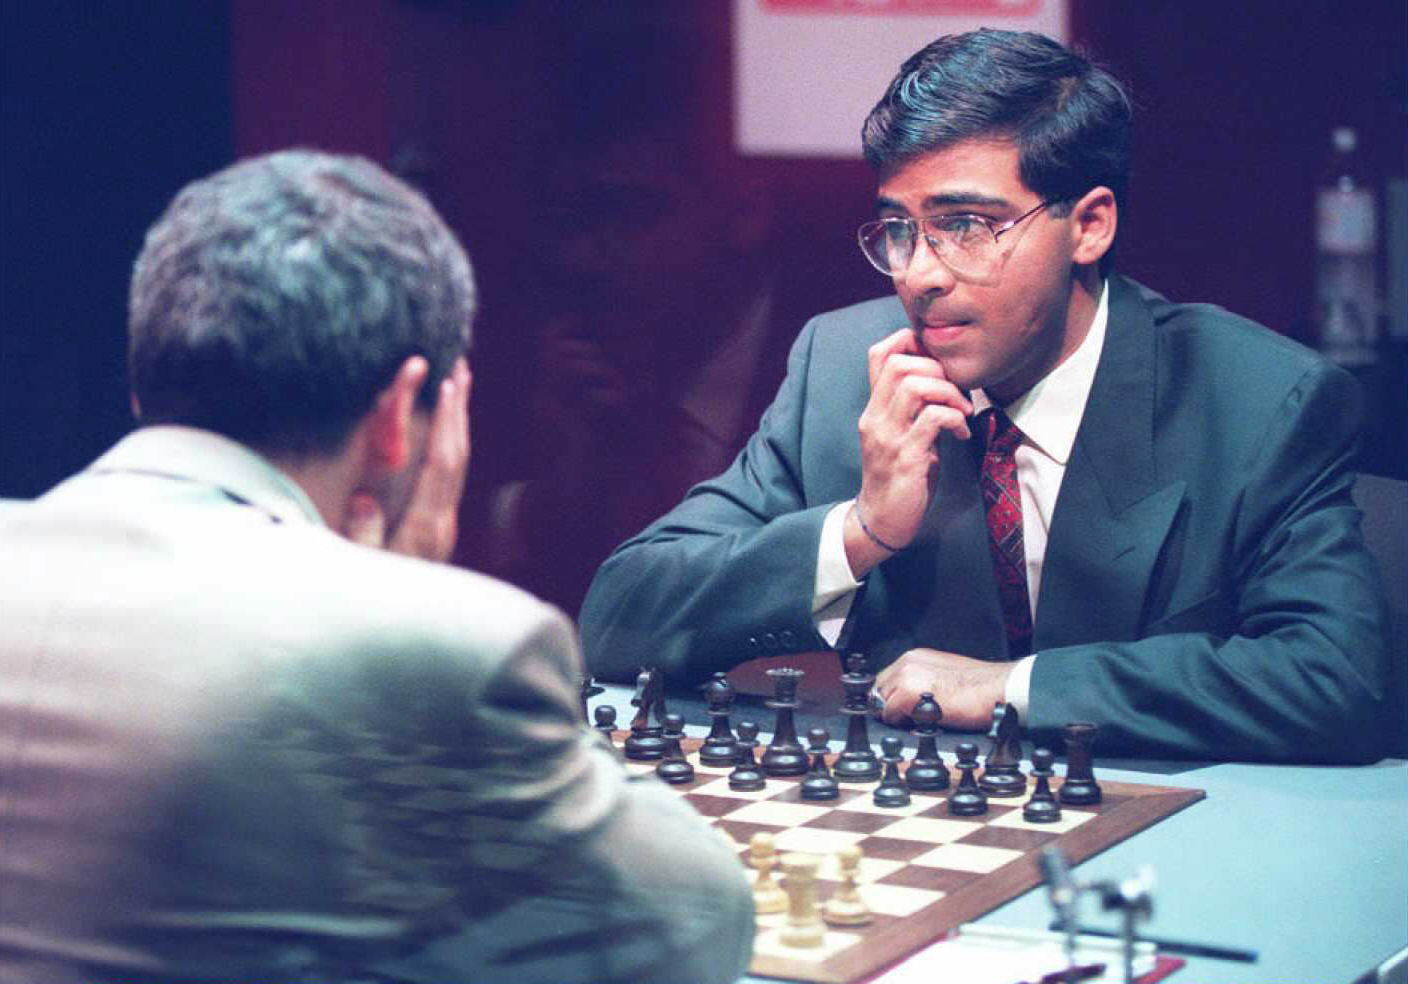 Vichy Anand contemplates his move against Gary Kasparov at the World Chess Championship in 1995.